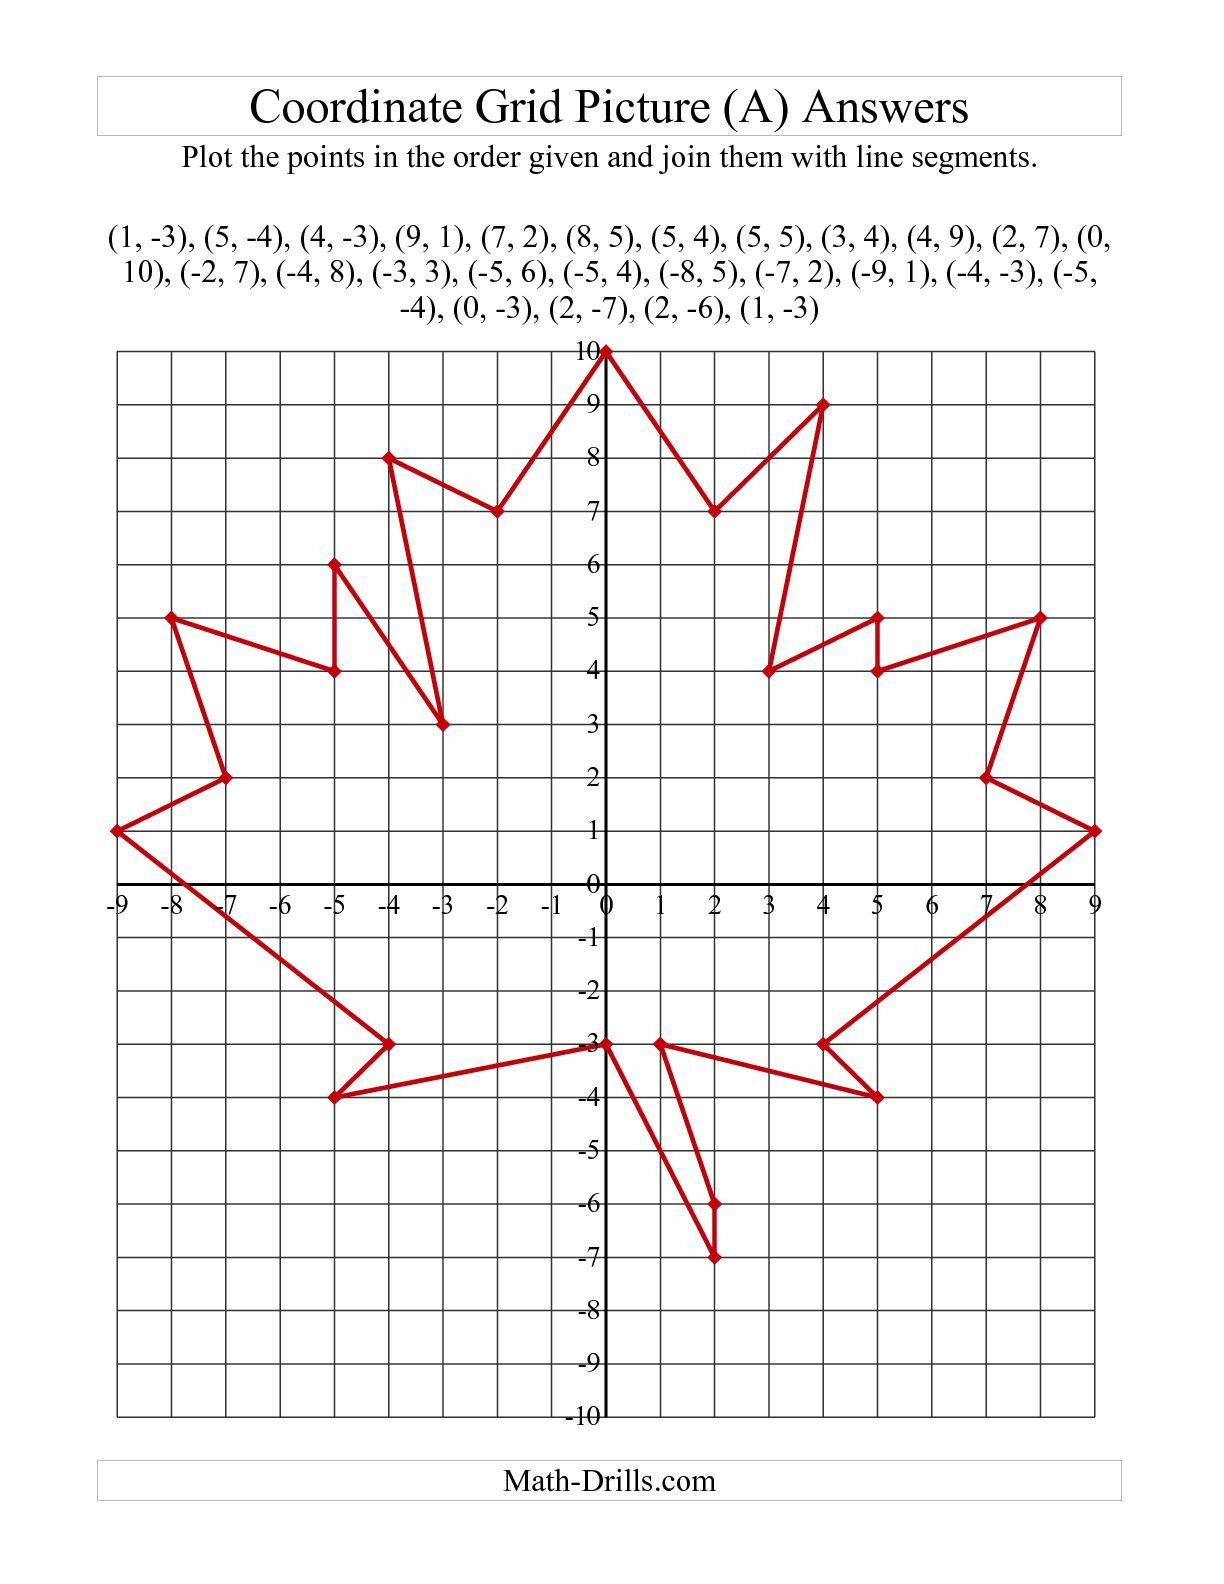 5th Grade Coordinate Grid Worksheets the Plotting Coordinate Points Art Red Maple Leaf A